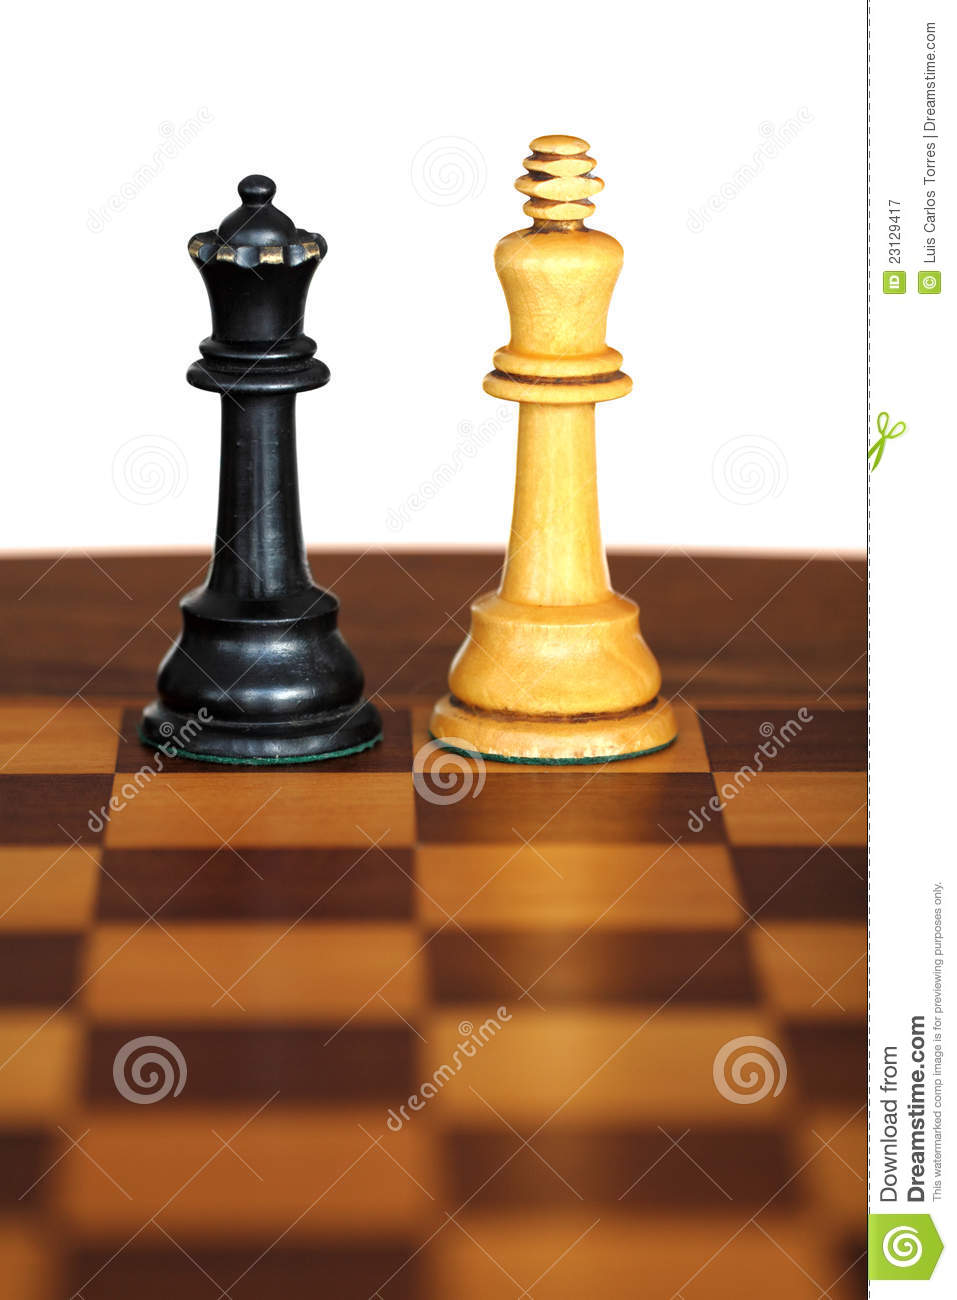 Chess pieces on white background.